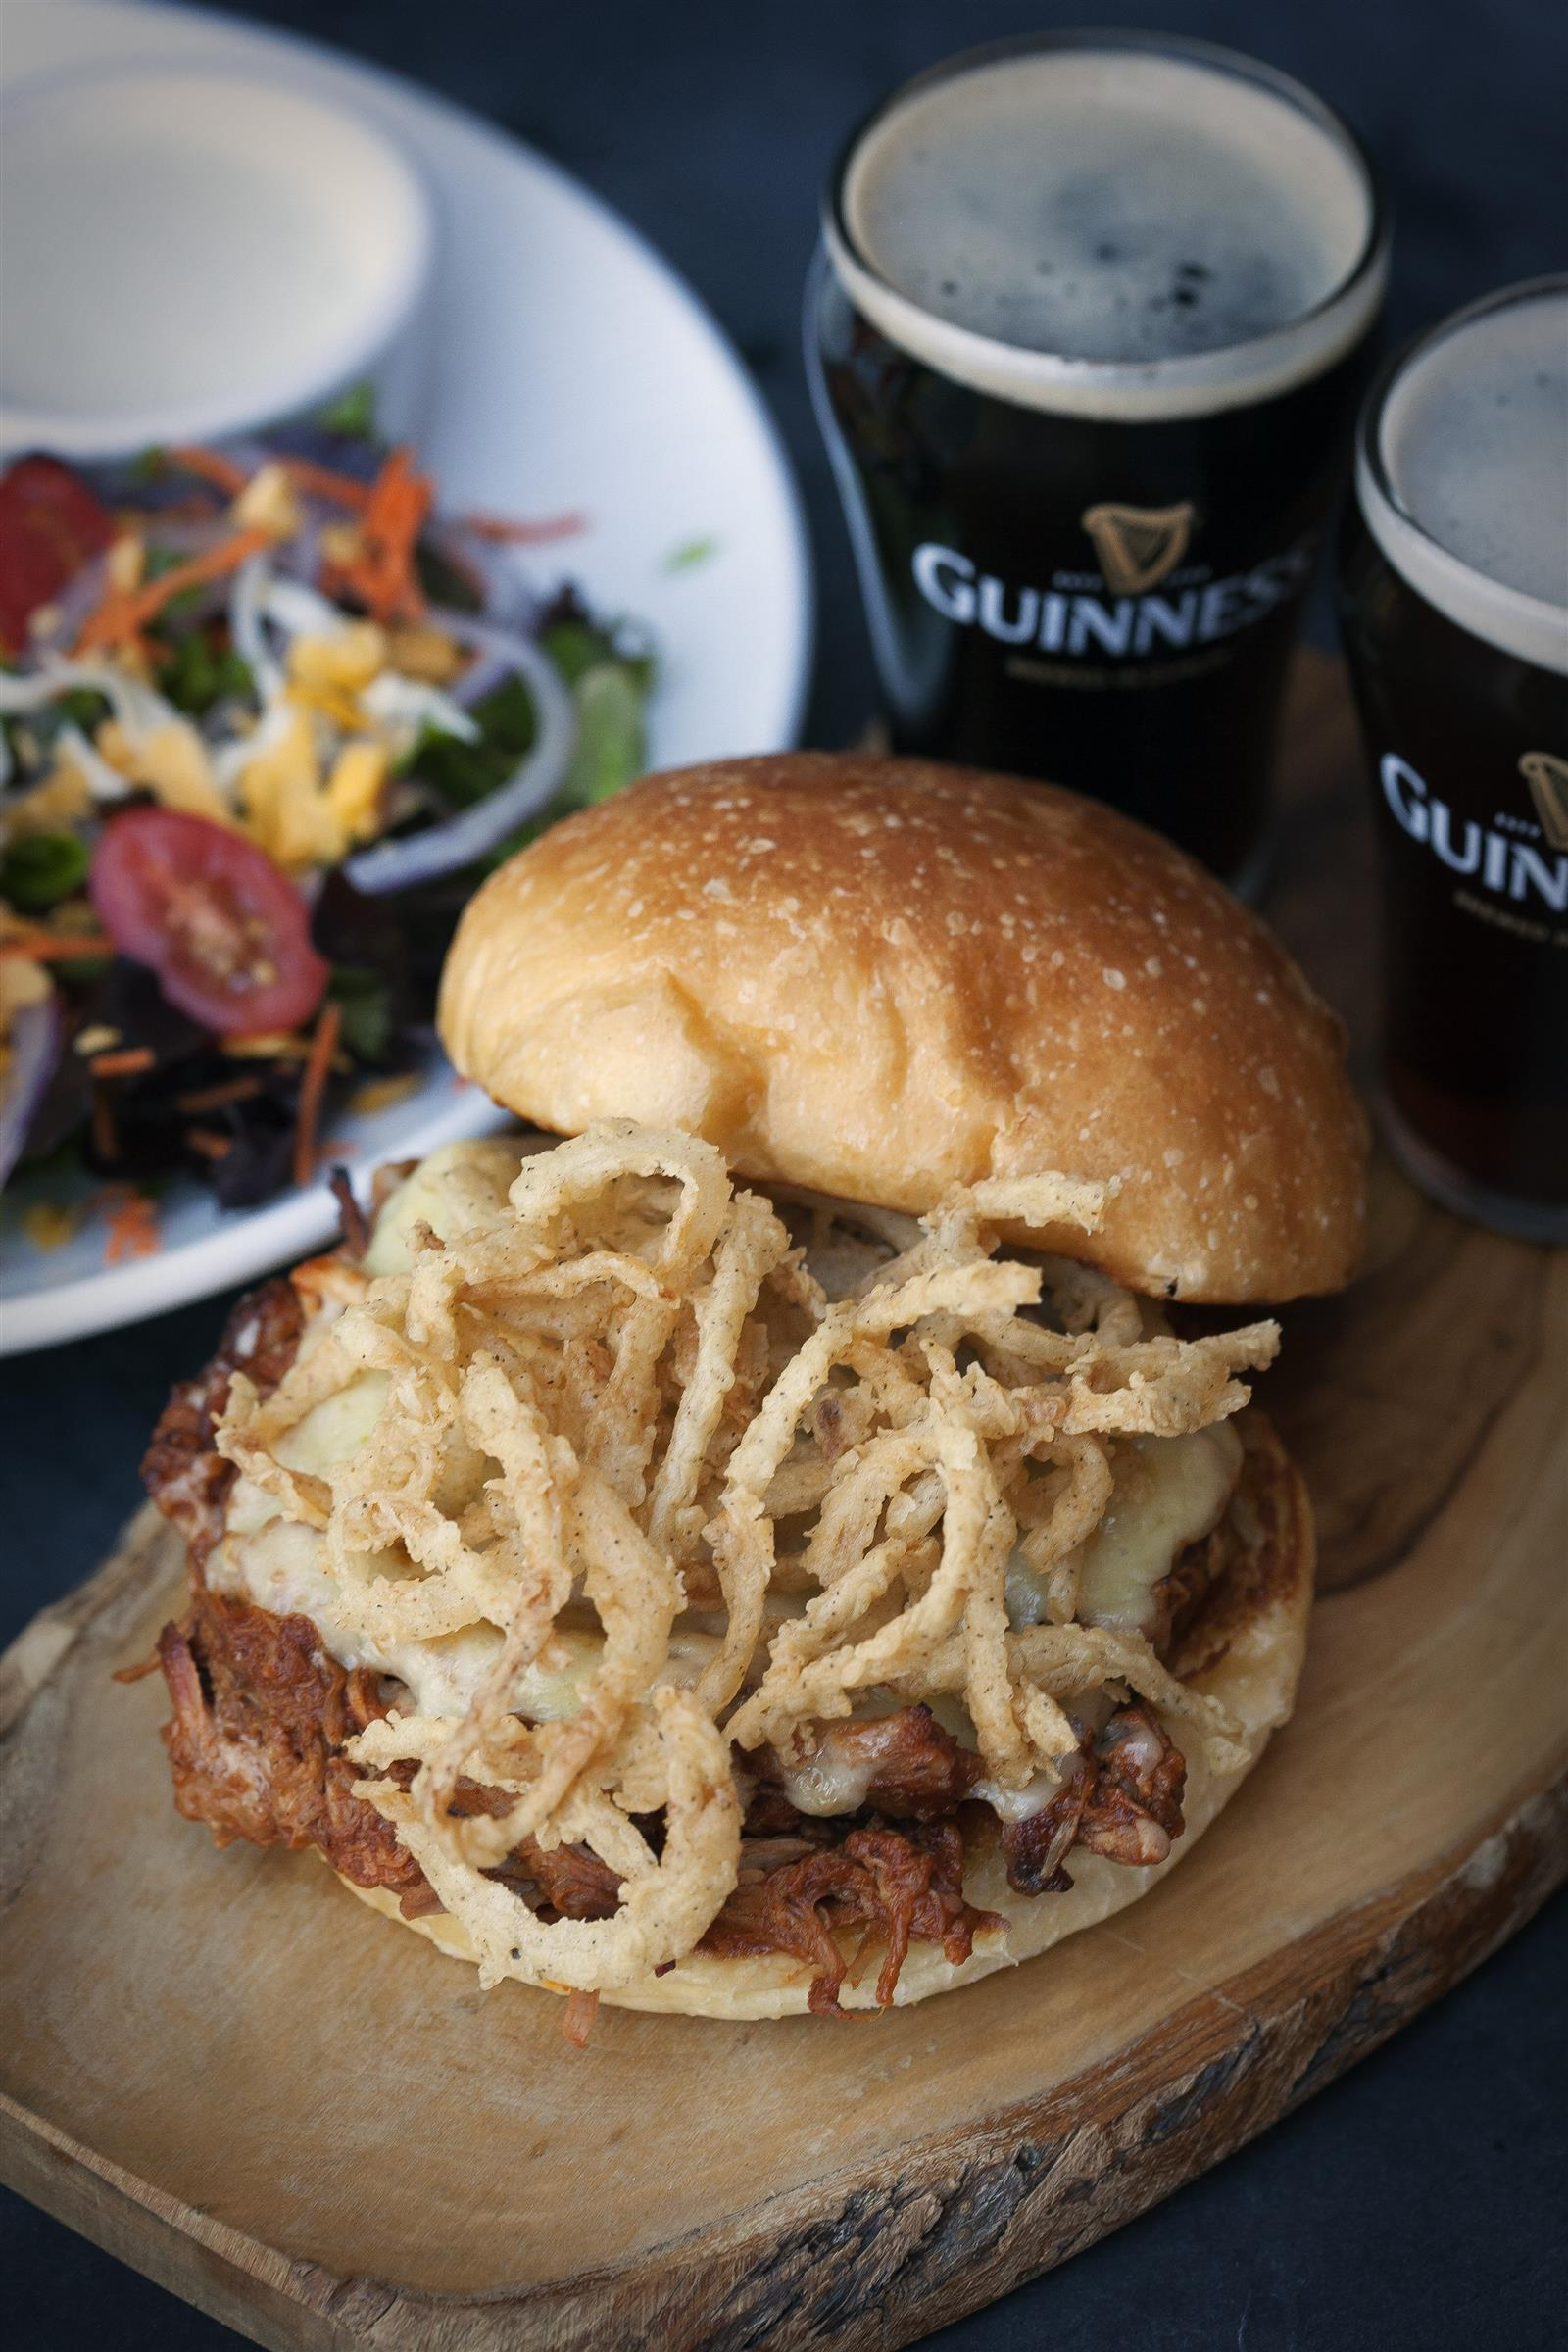 Twisted irishman. Pulled pork  topped with our signature Jameson BBQ sauce, Smithwick's ale battered onion straws and Irish cheddar